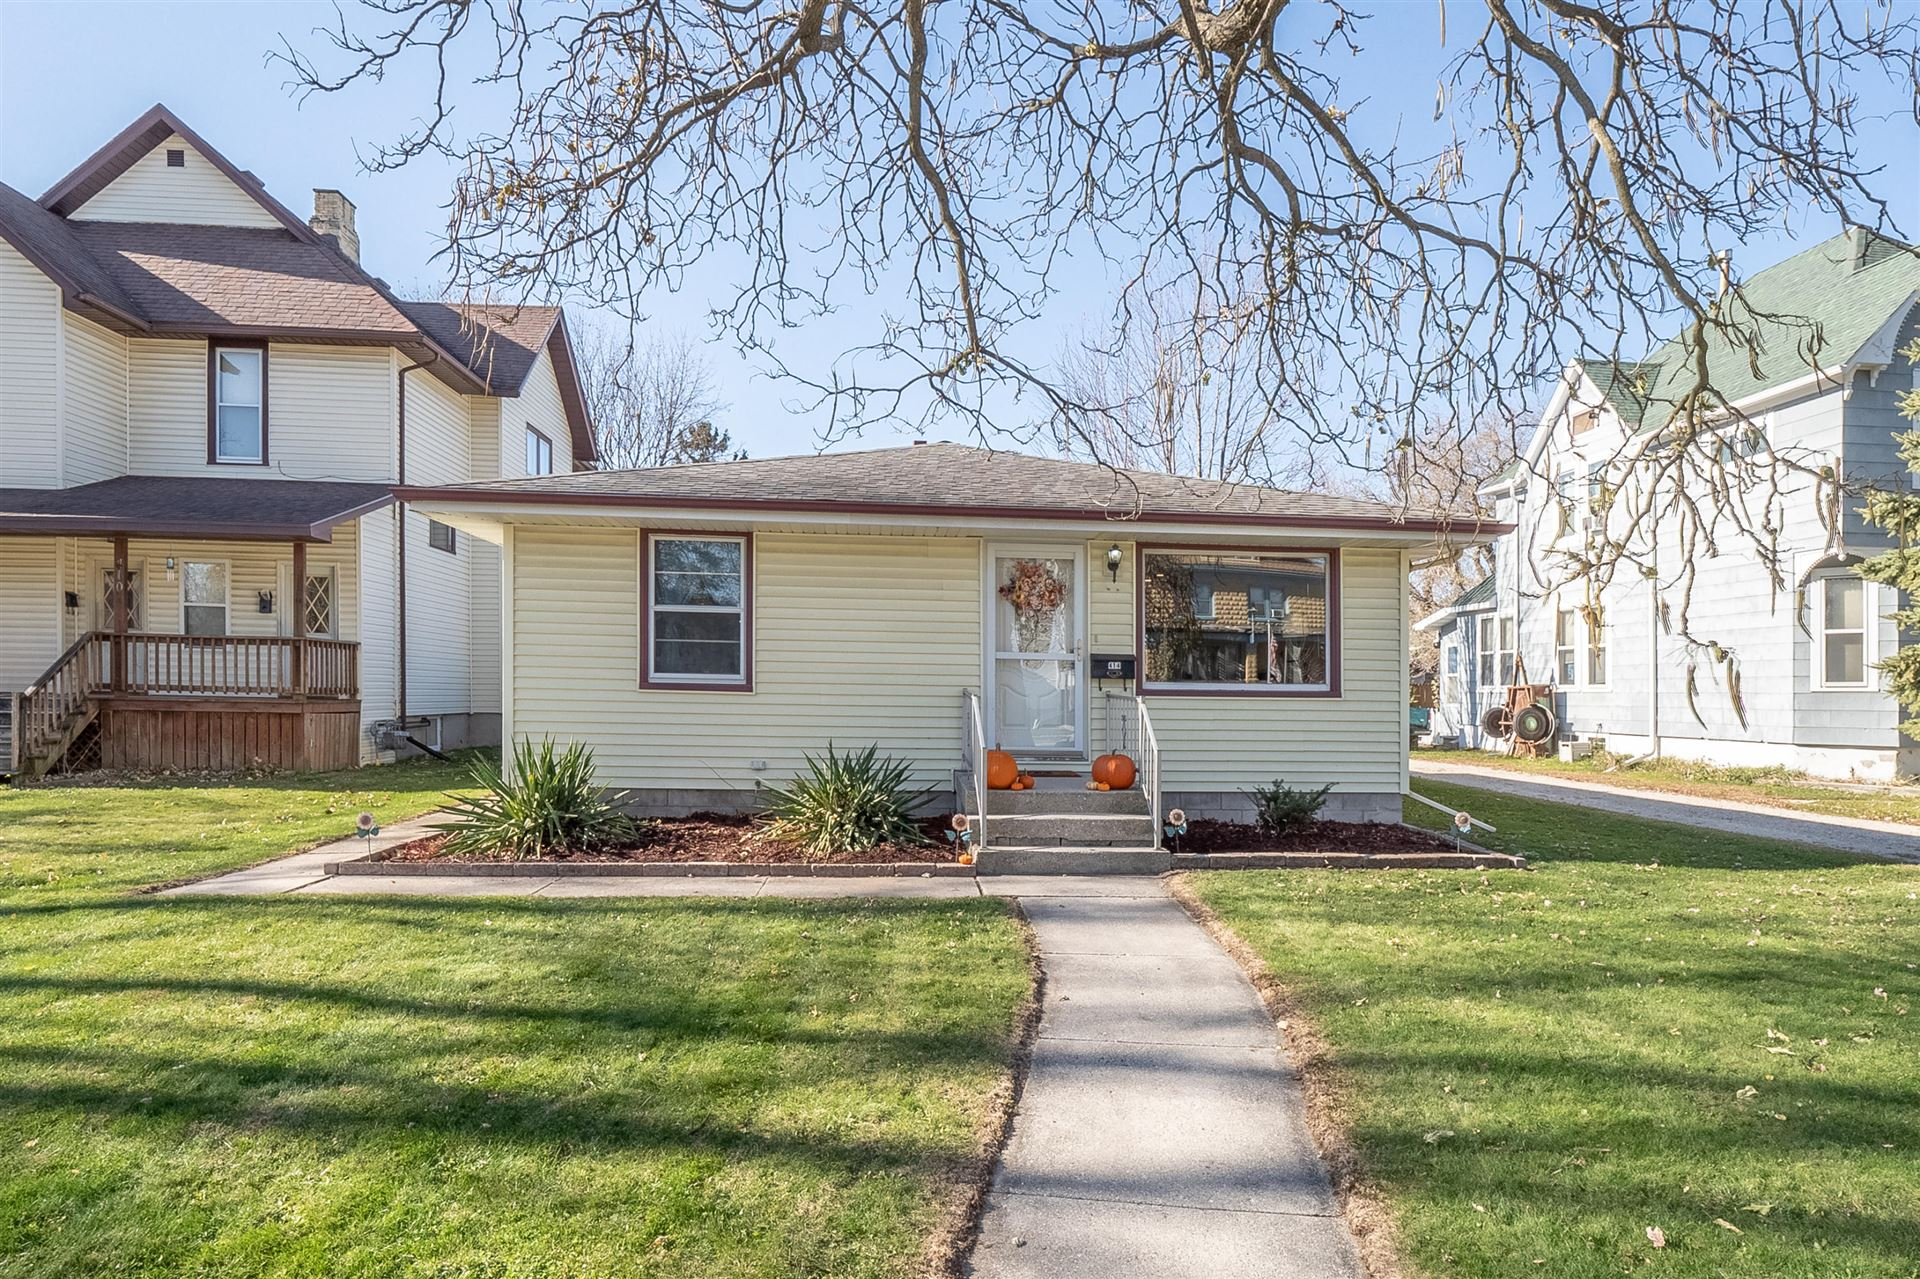 414 N Milwaukee St, Plymouth, WI 53073 - #: 1718191